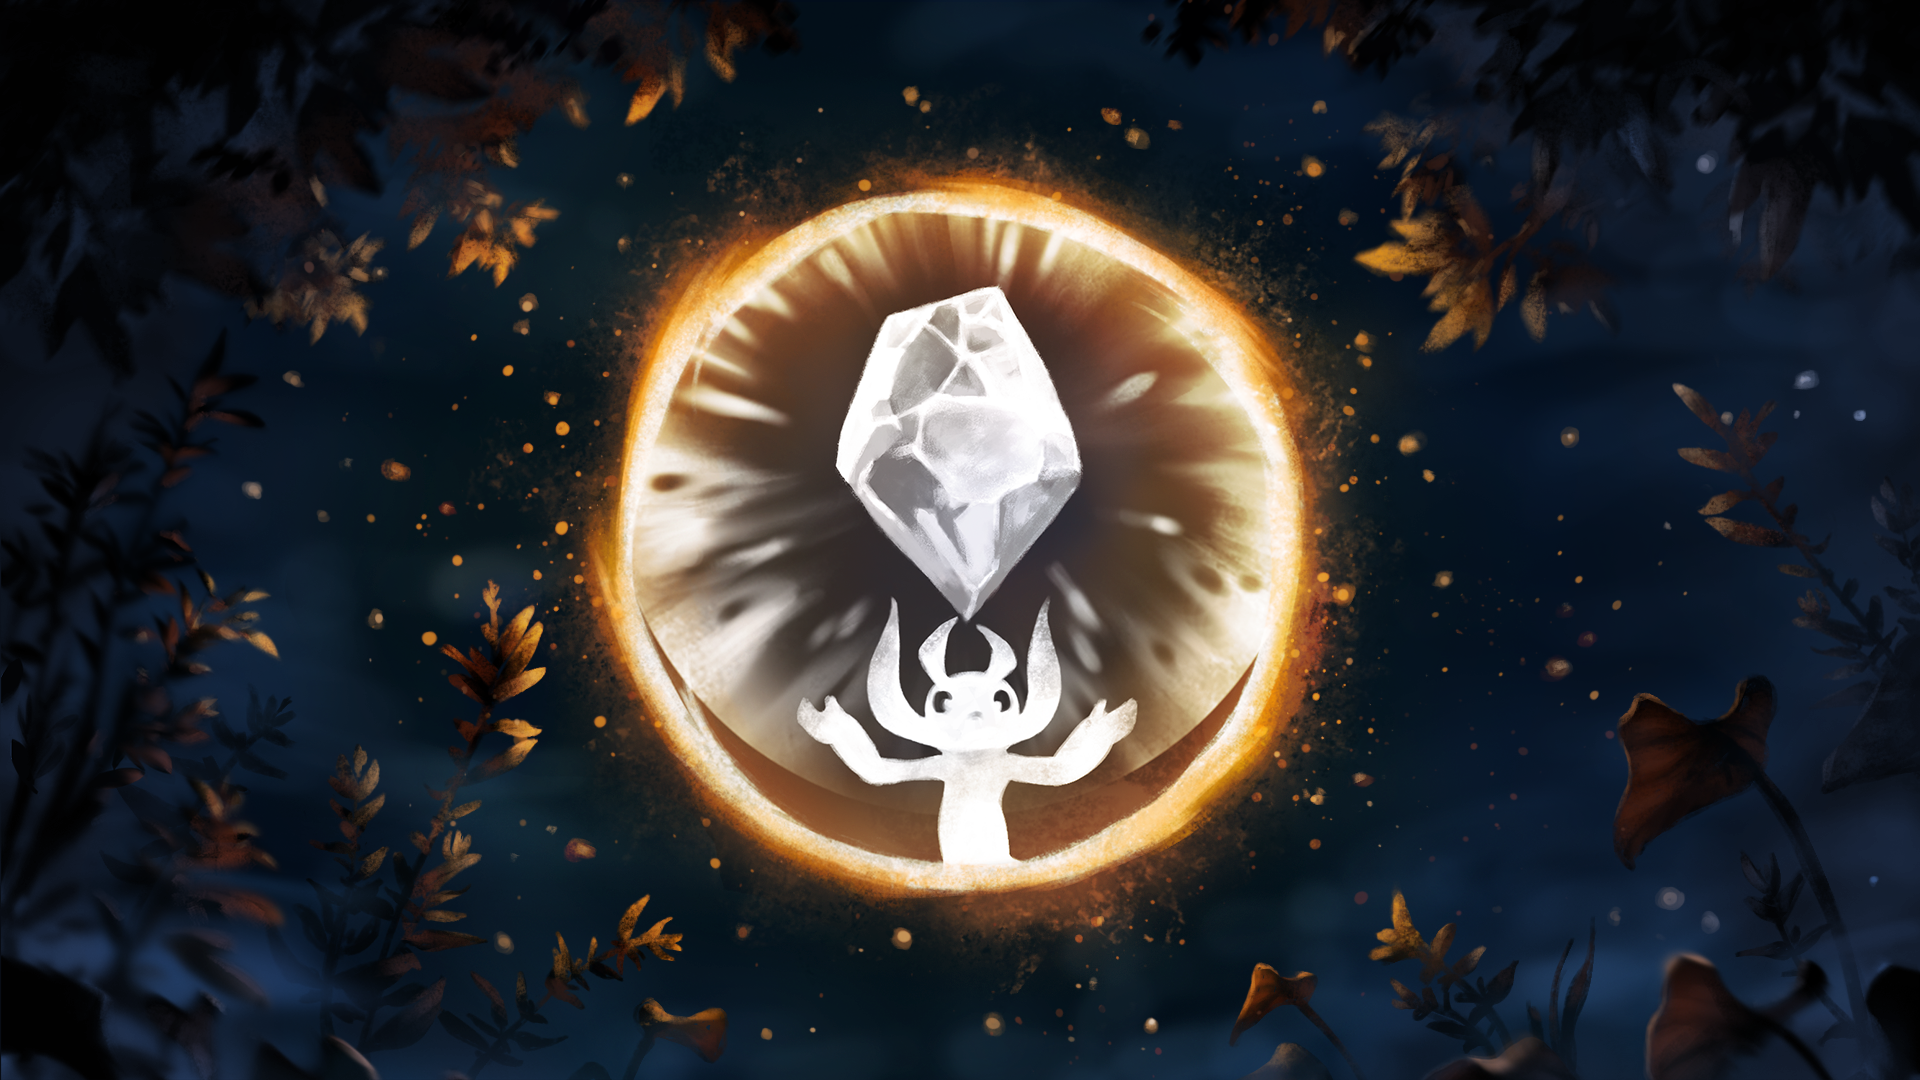 Top of the World achievement for Ori and the Blind Forest on Nintendo Switch